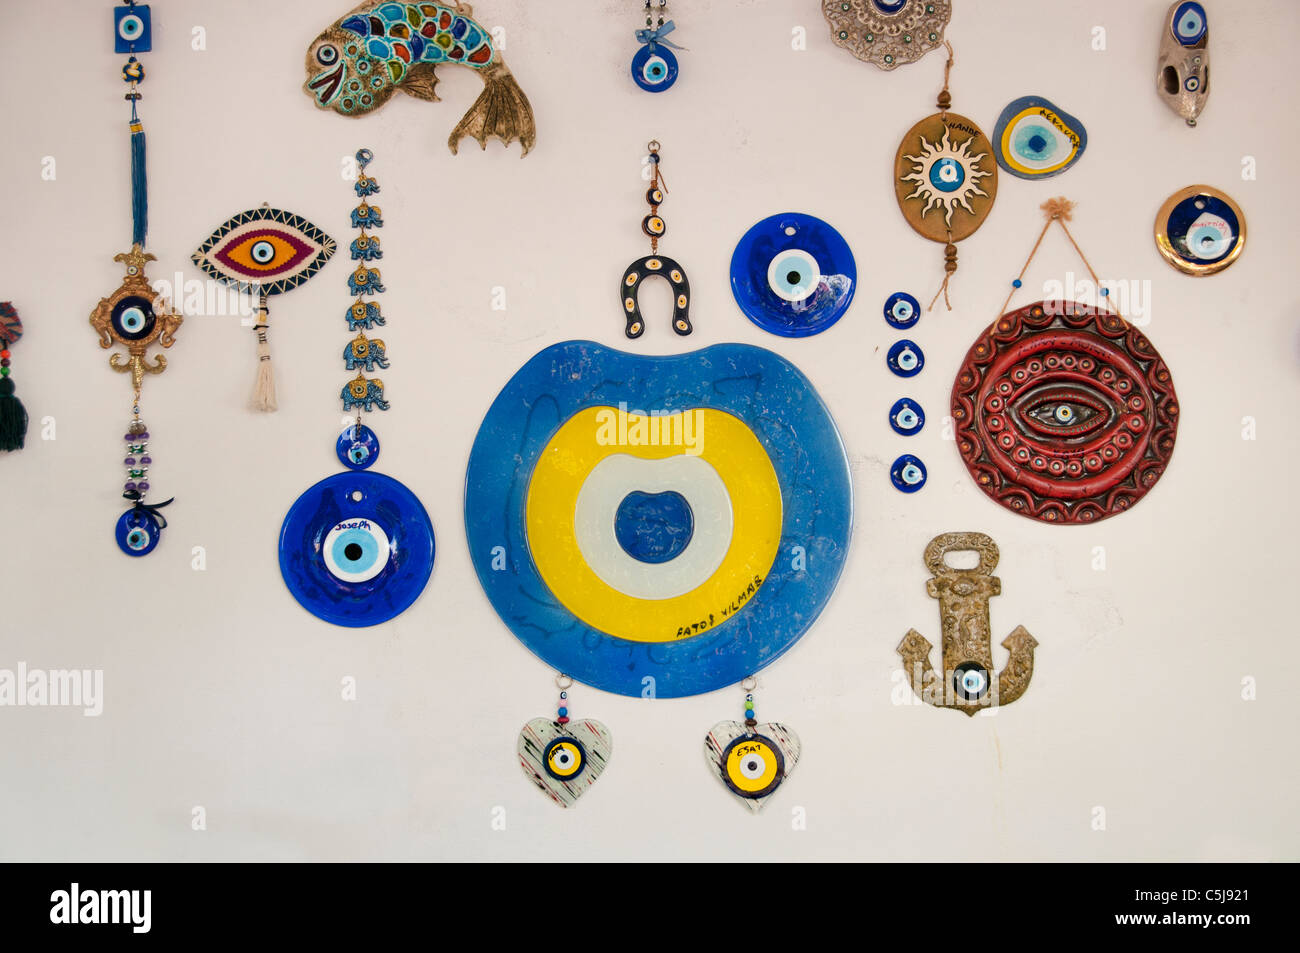 Fethiye Turkey necklace beads chain  Market Bazaar - Stock Image